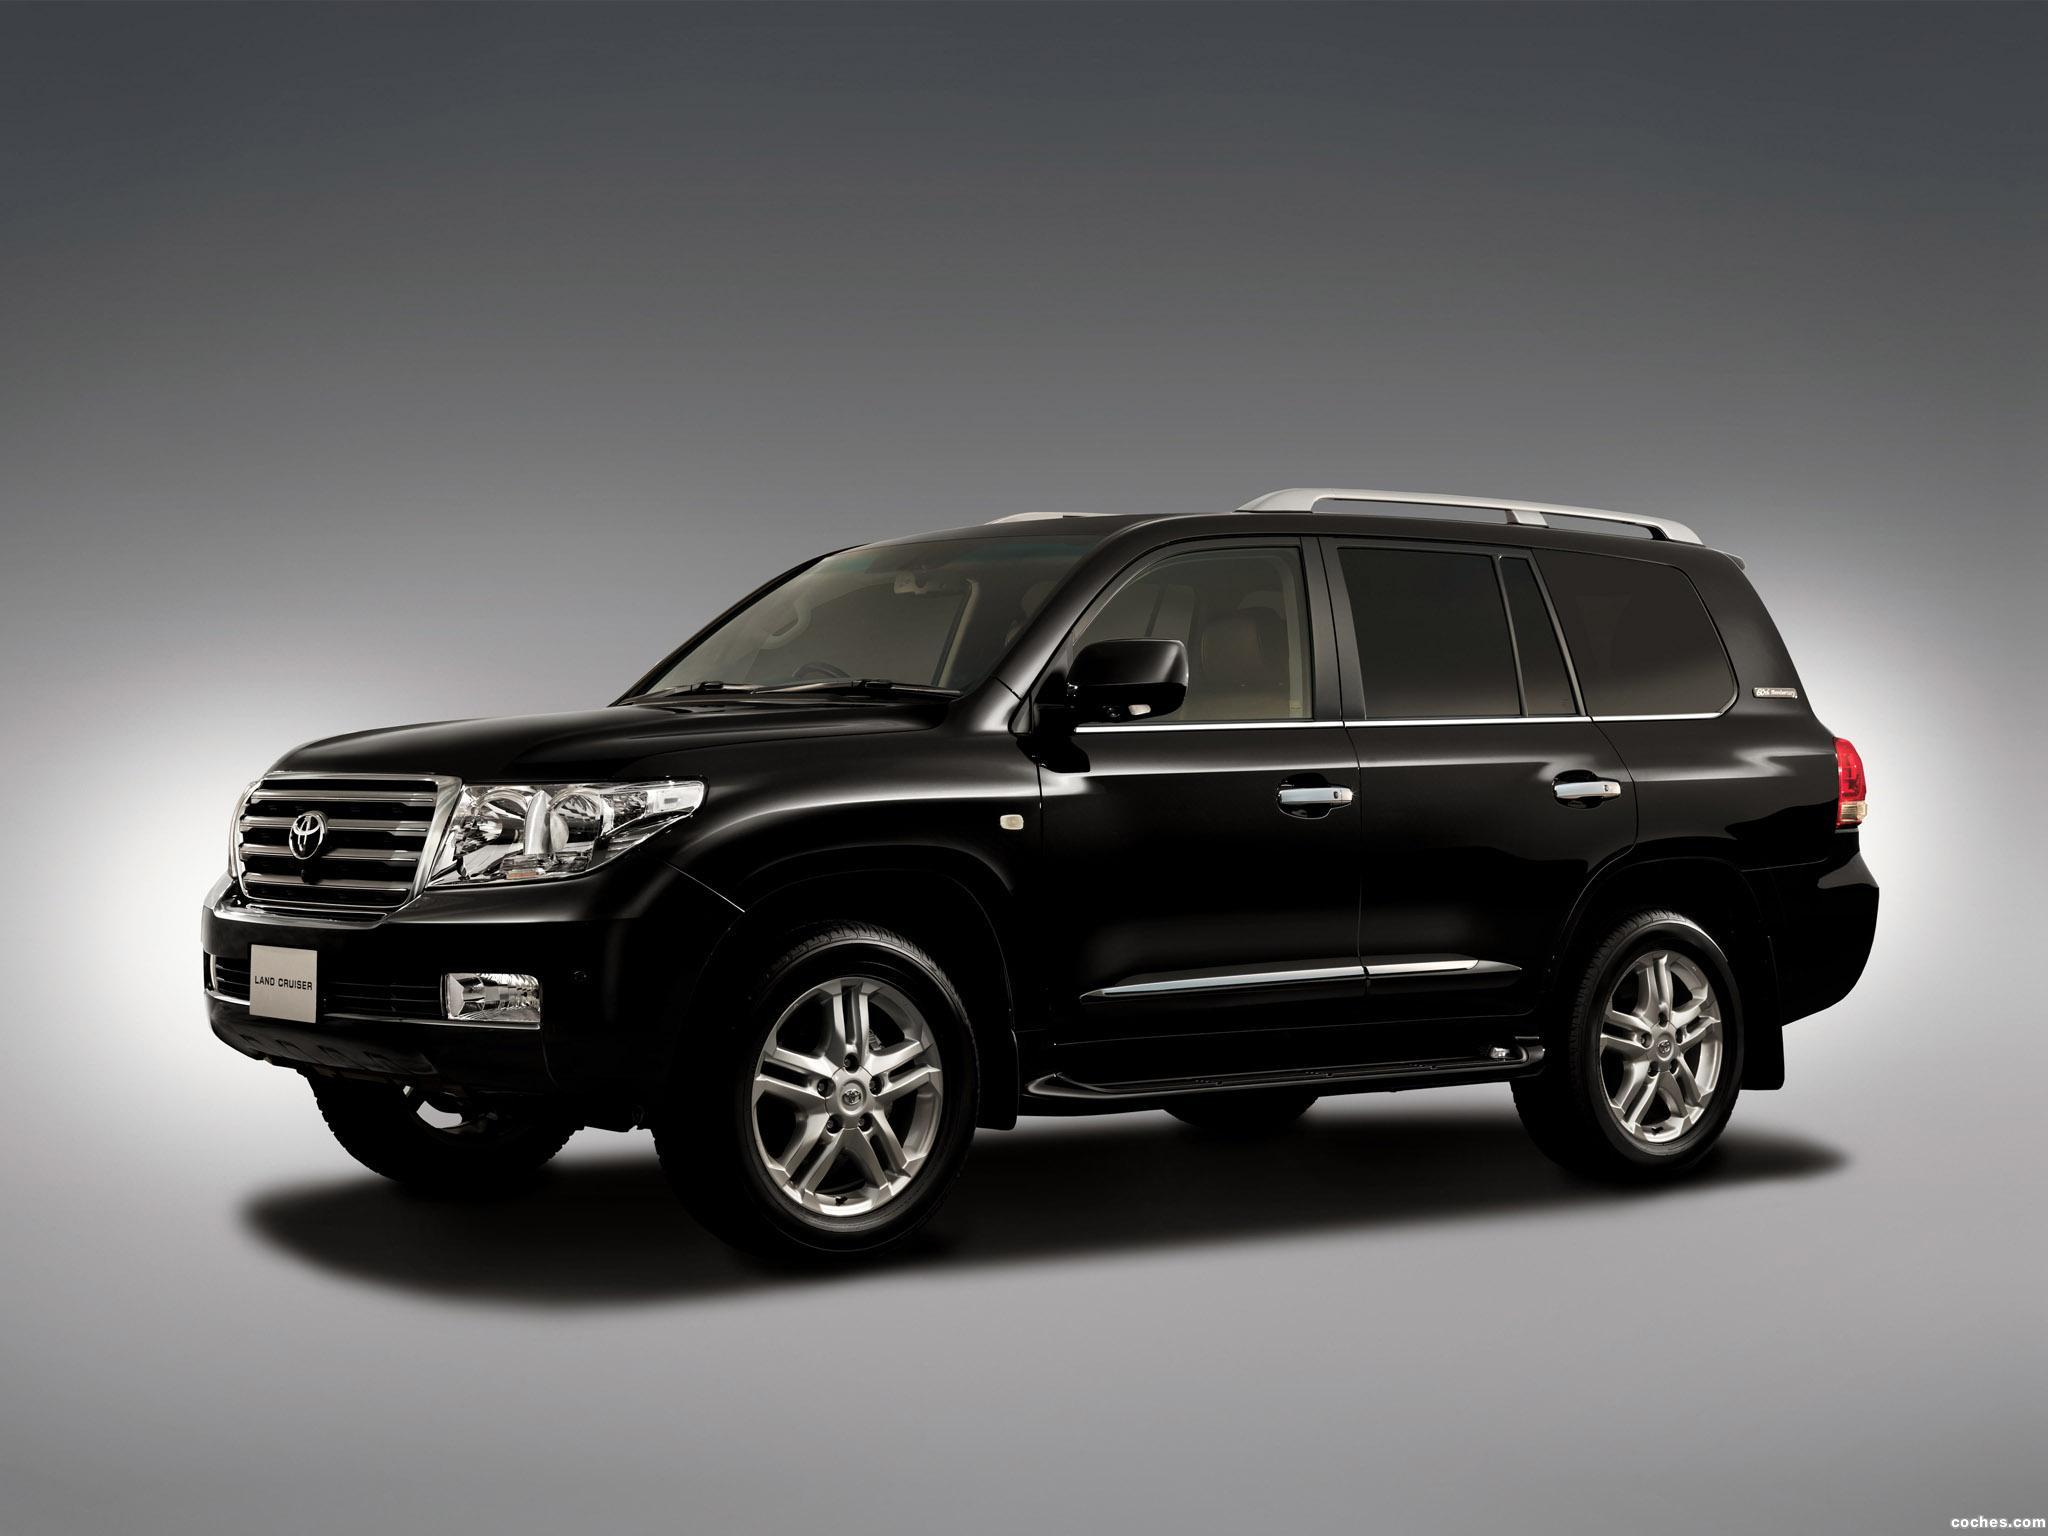 Foto 0 de Toyota Land Cruiser 200 60th Anniversary 2011